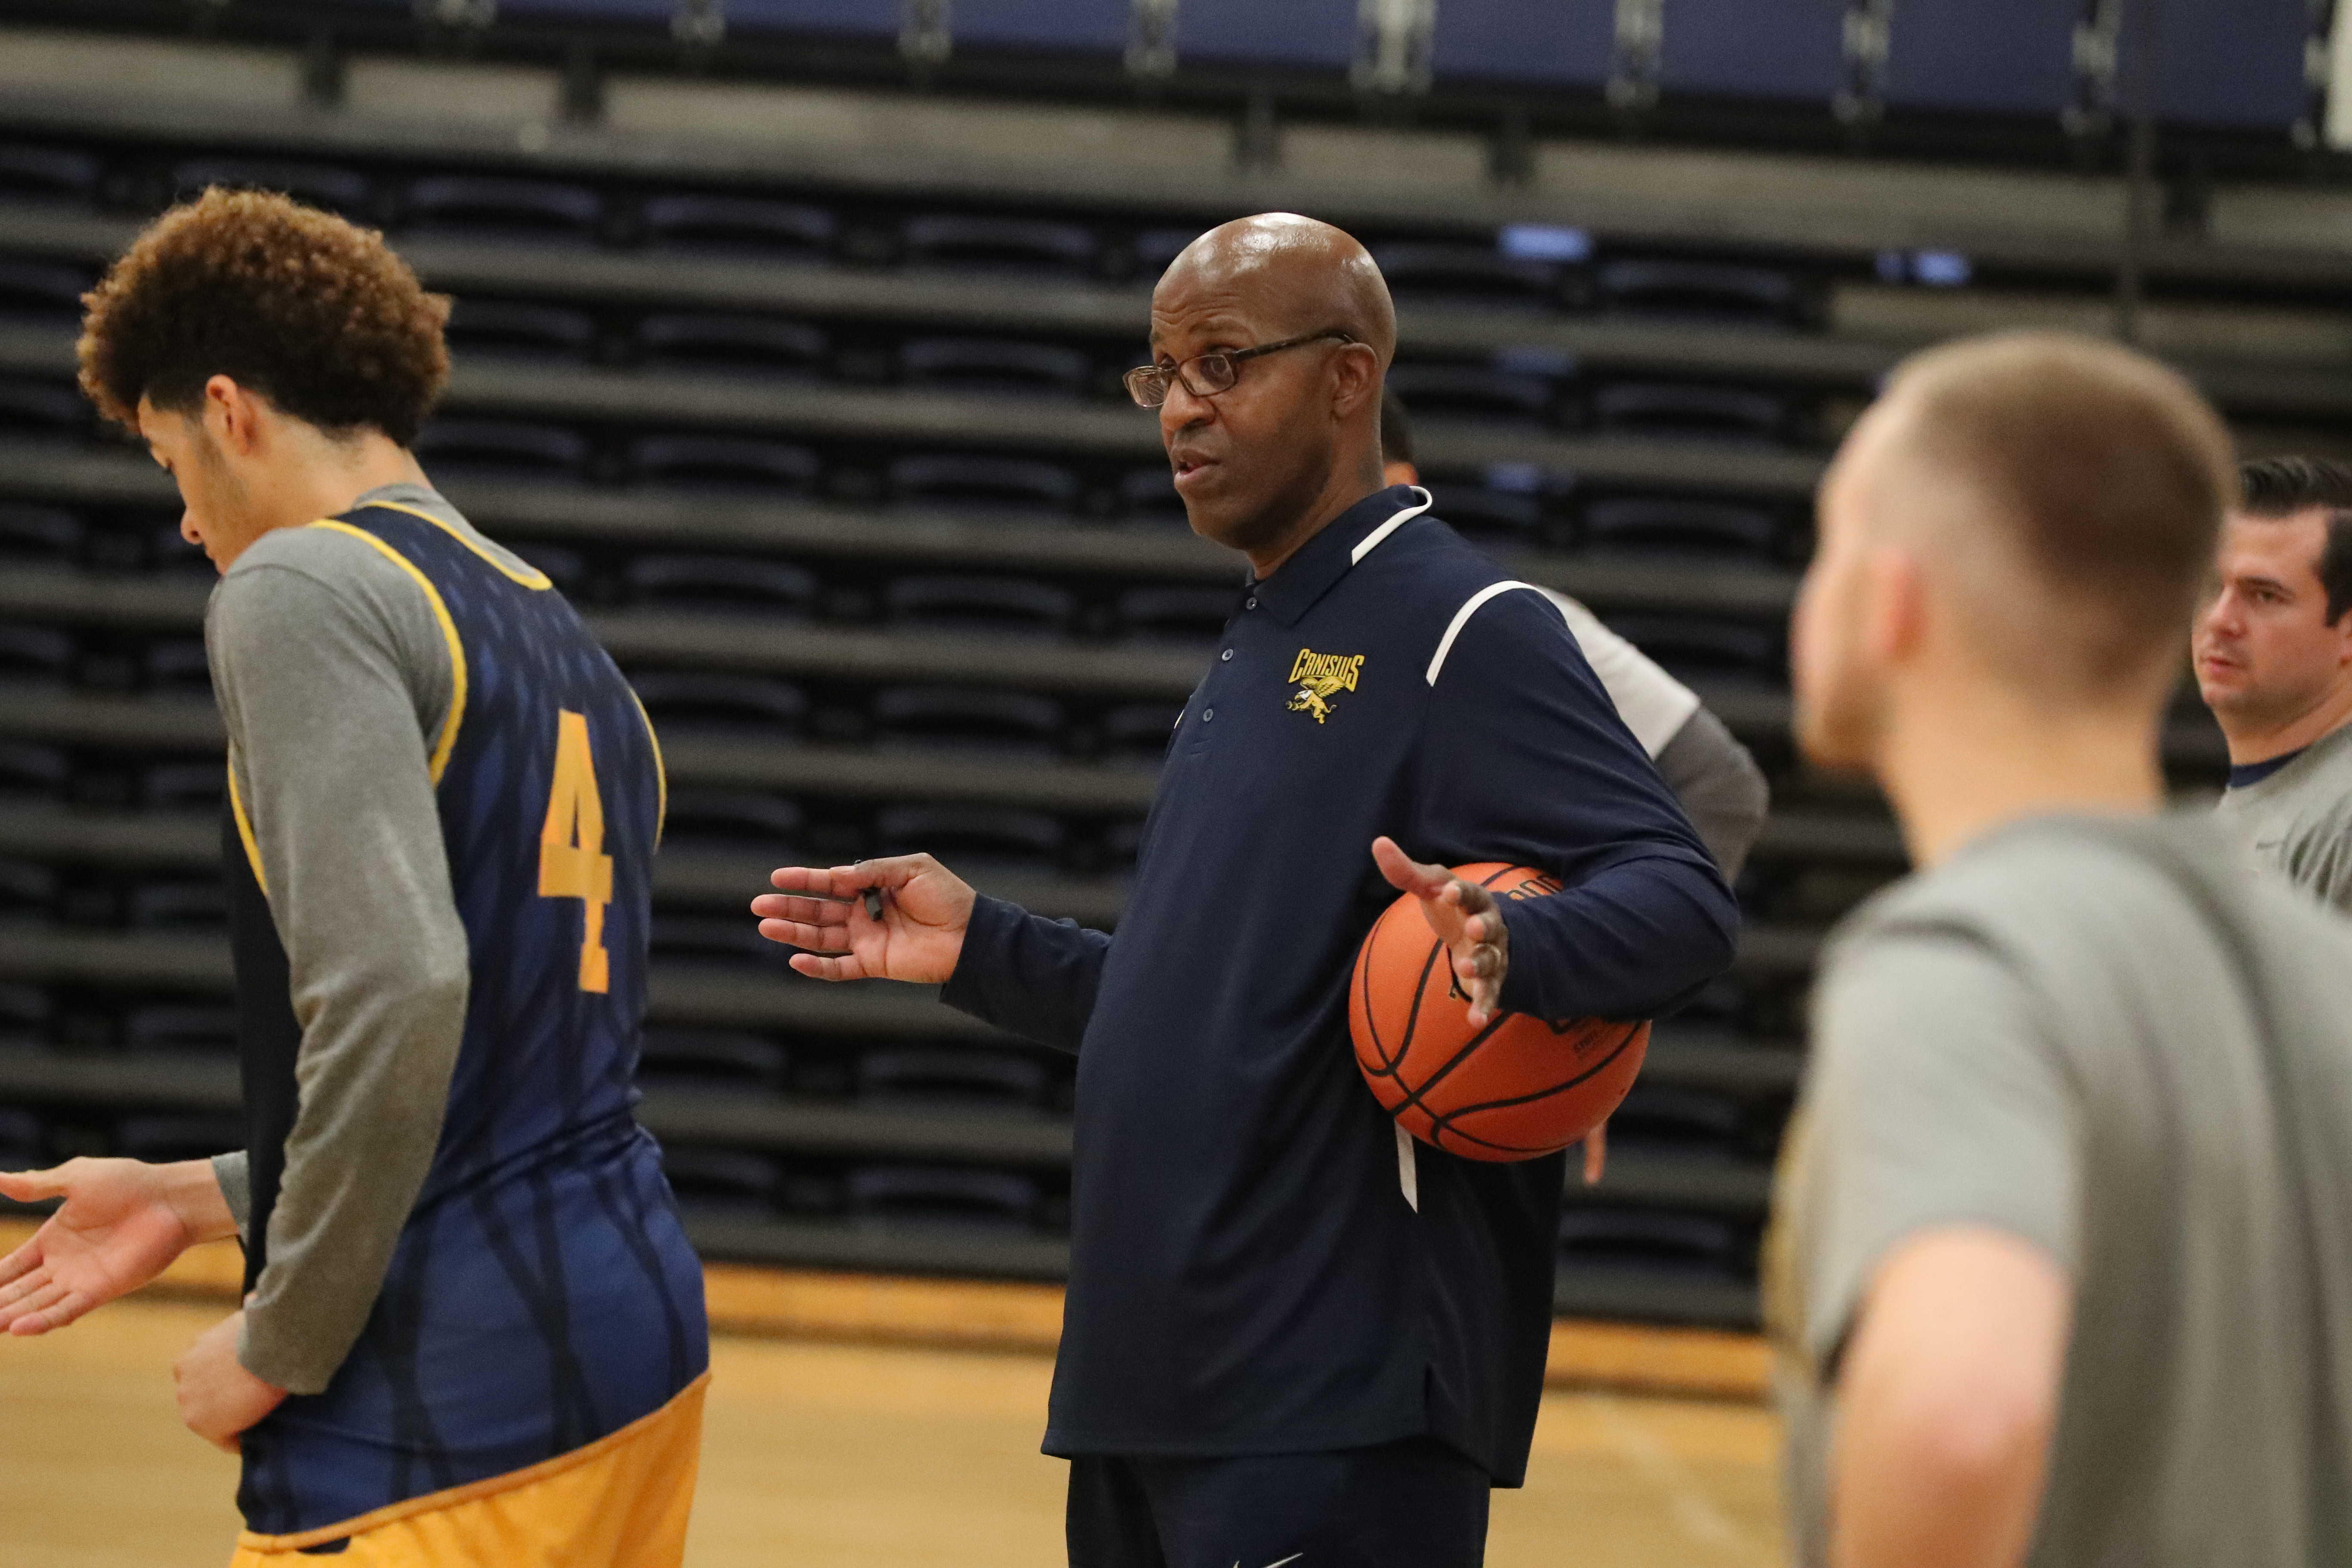 Canisius Golden Griffins head coach Reggie Witherspoon explains a play during practice at Canisius college in Buffalo on Wednesday, Nov. at 2, 2016. (James P. McCoy/Buffalo News)